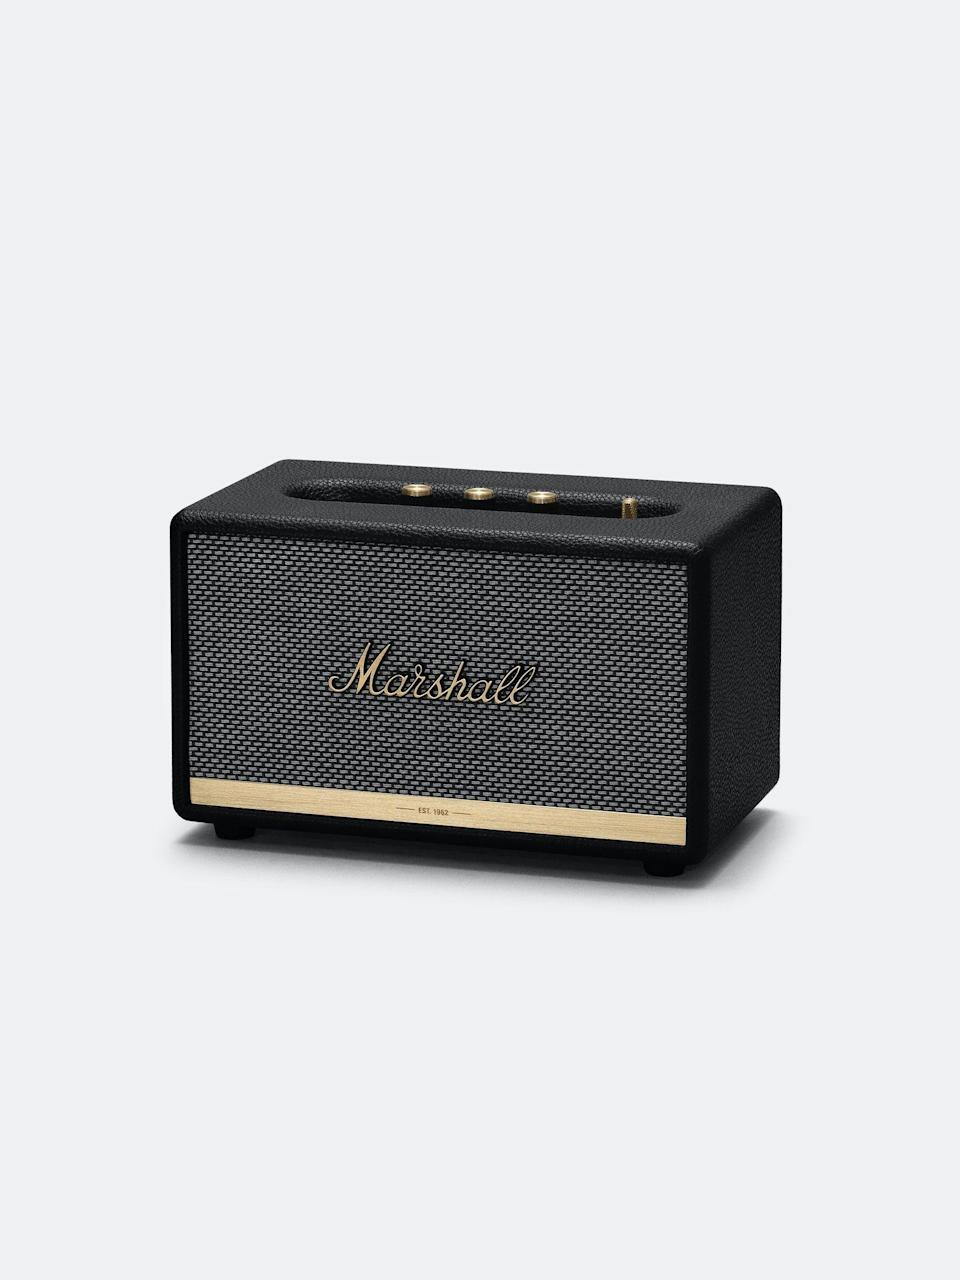 """<p><strong>Marshall</strong></p><p>verishop.com</p><p><strong>$249.00</strong></p><p><a href=""""https://go.redirectingat.com?id=74968X1596630&url=https%3A%2F%2Fwww.verishop.com%2Fmarshall%2Fspeakers%2Facton-home-bluetooth-speaker%2Fp4164273405975%3Fvariant_id%3D30267219214359&sref=https%3A%2F%2Fwww.menshealth.com%2Ftechnology-gear%2Fg35237975%2Flong-distance-relationship-gifts%2F"""" rel=""""nofollow noopener"""" target=""""_blank"""" data-ylk=""""slk:Shop Now"""" class=""""link rapid-noclick-resp"""">Shop Now</a></p><p>A very good (and very pretty) speaker is basically the modern equivalent of burning your love a CD. Only, you know, way better and with infinite possibilities. </p>"""